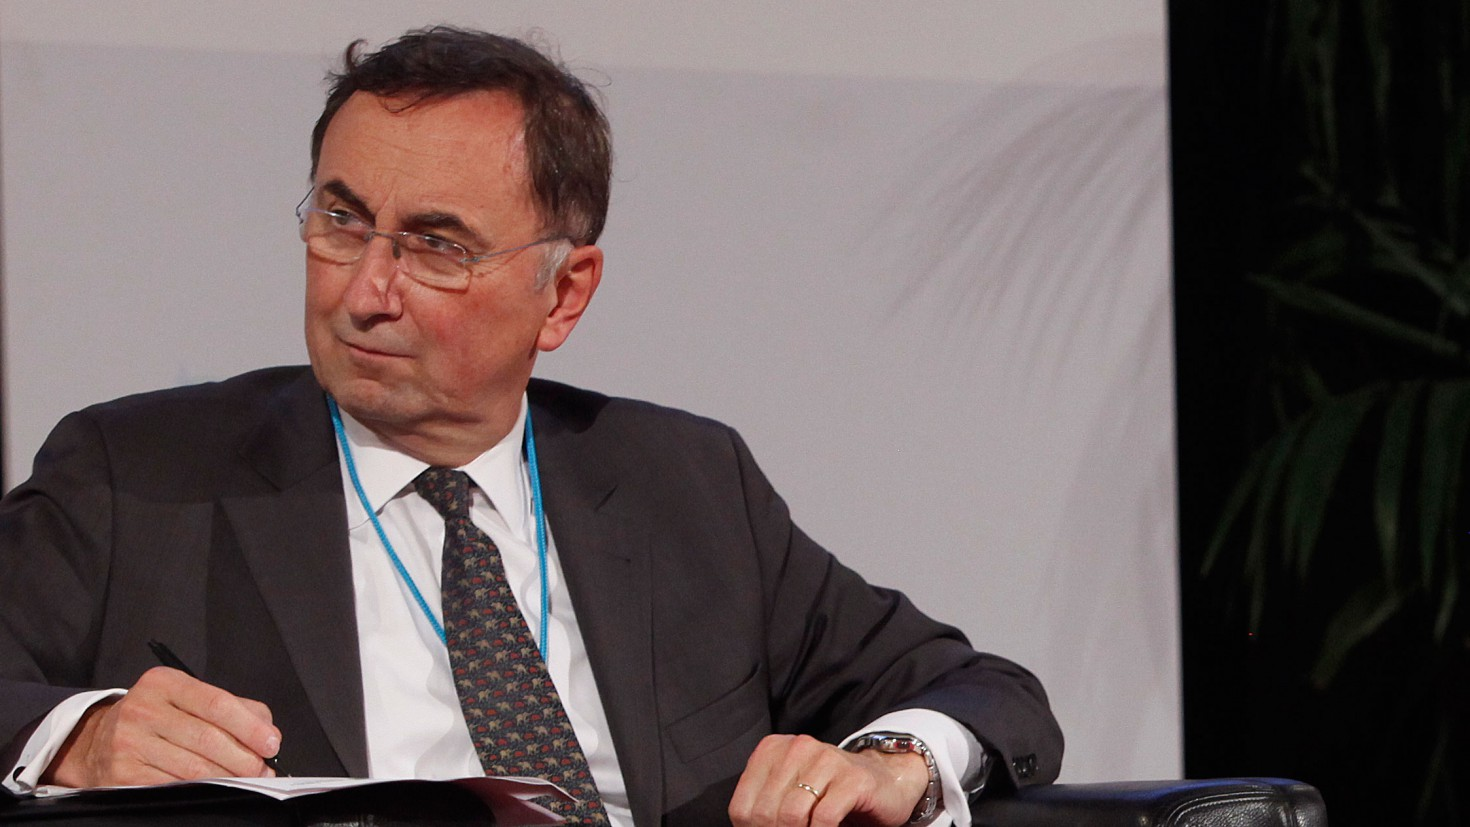 """""""There is very little, practically no discussion about geo-engineering at the policy level. Our job is to move the debate from academia into intergovernmental policy space and to develop governance"""", said Pasztor when KLIMA met him at COP22 in Marrakech. Photo: UNIDO / FLICKR"""